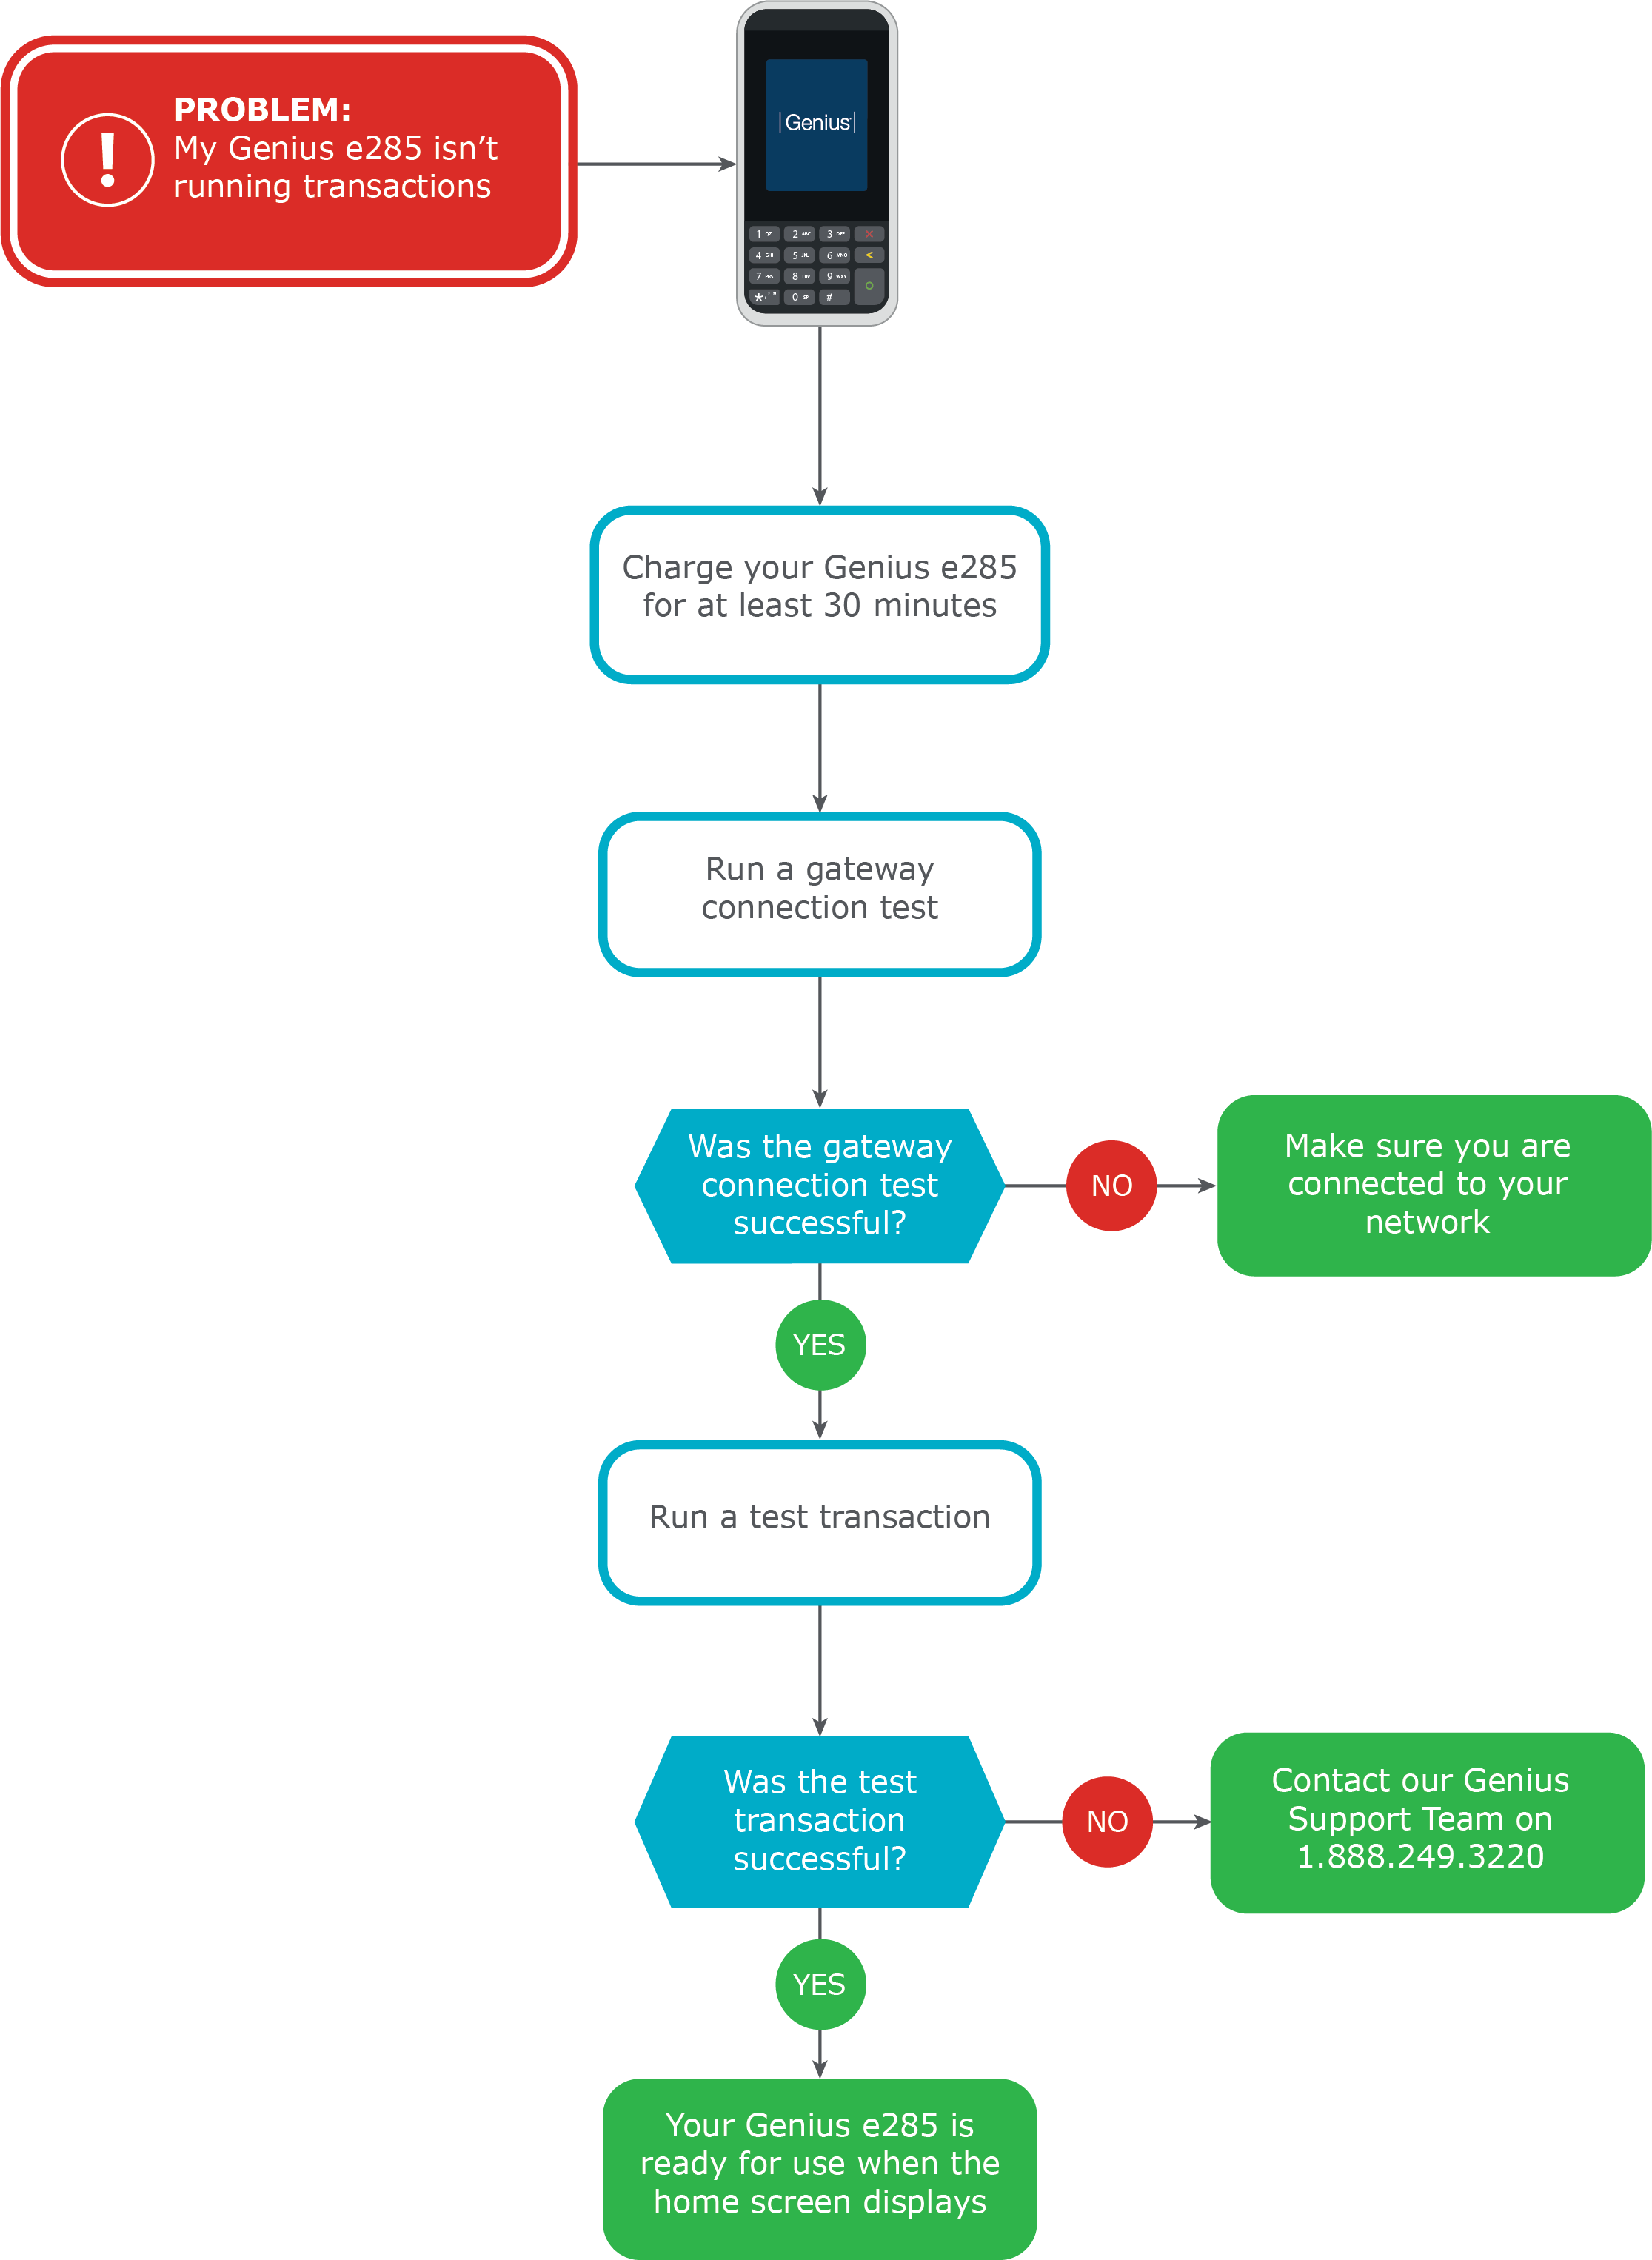 Flowchart with steps to fix a Genius device if it isnt running transactions.